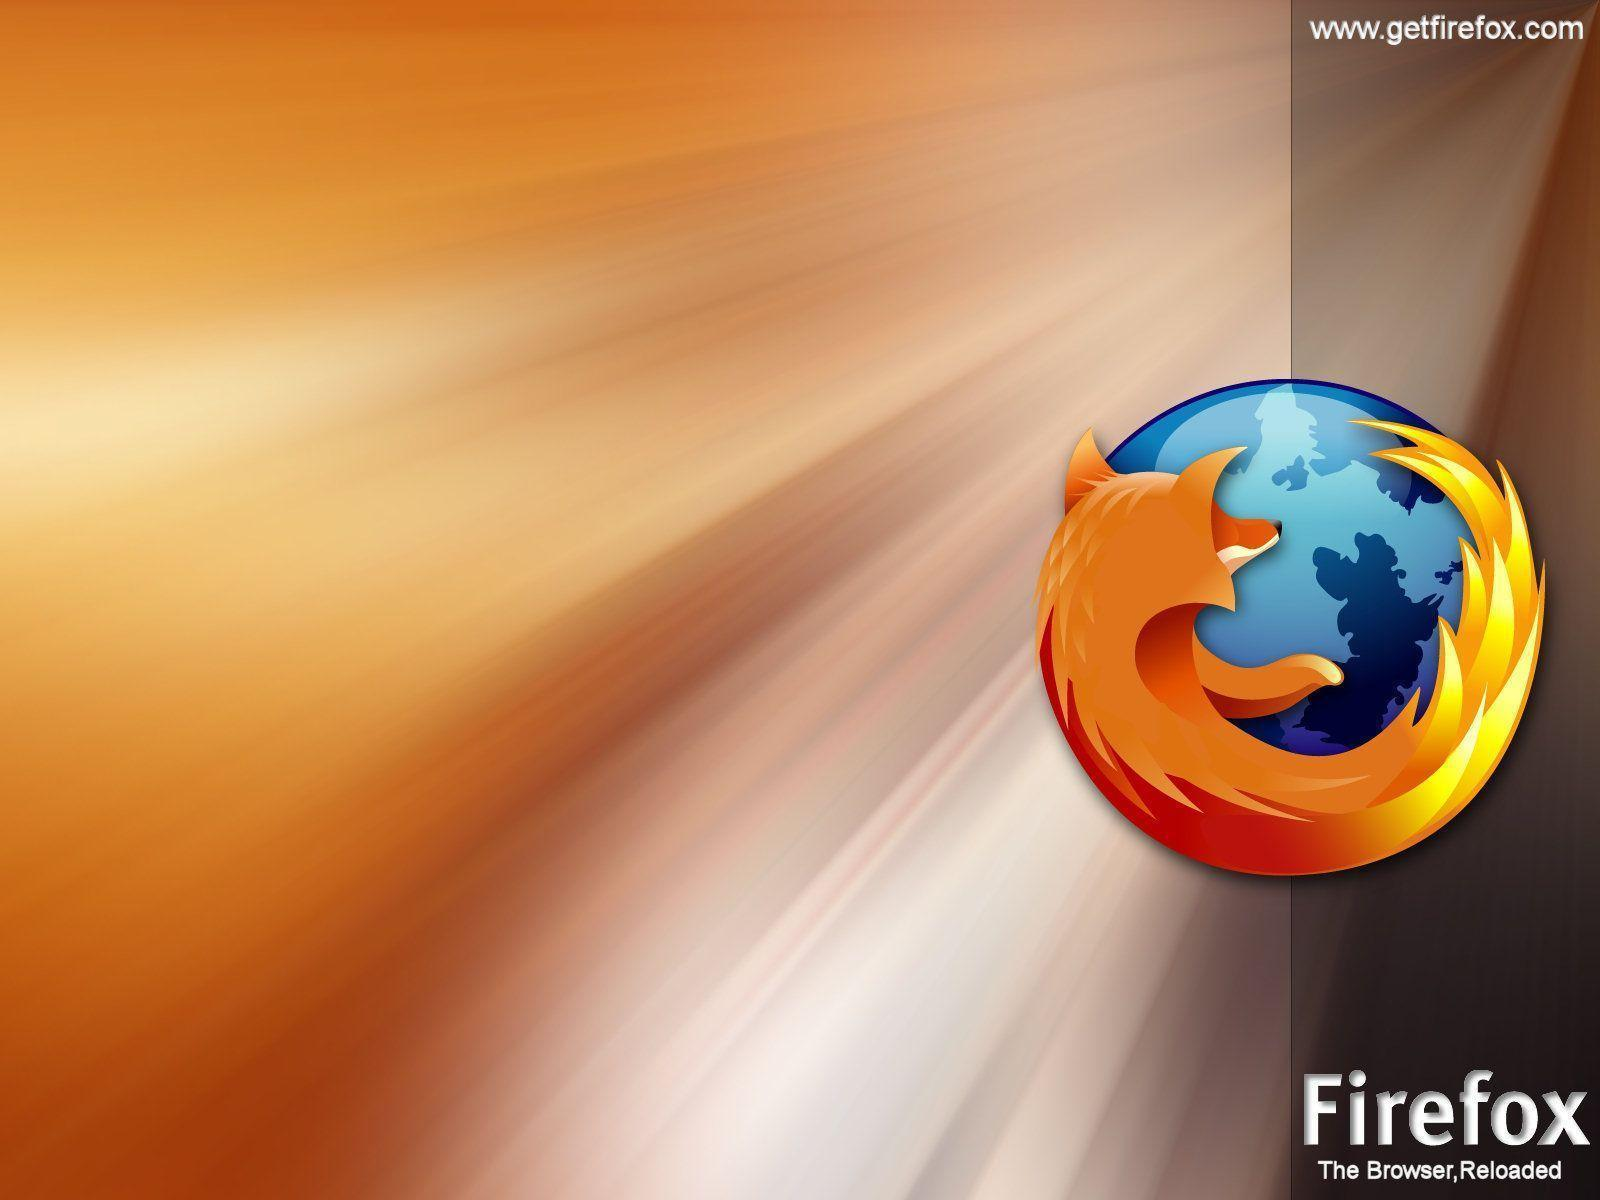 Firefox Backgrounds Themes 1600x1200